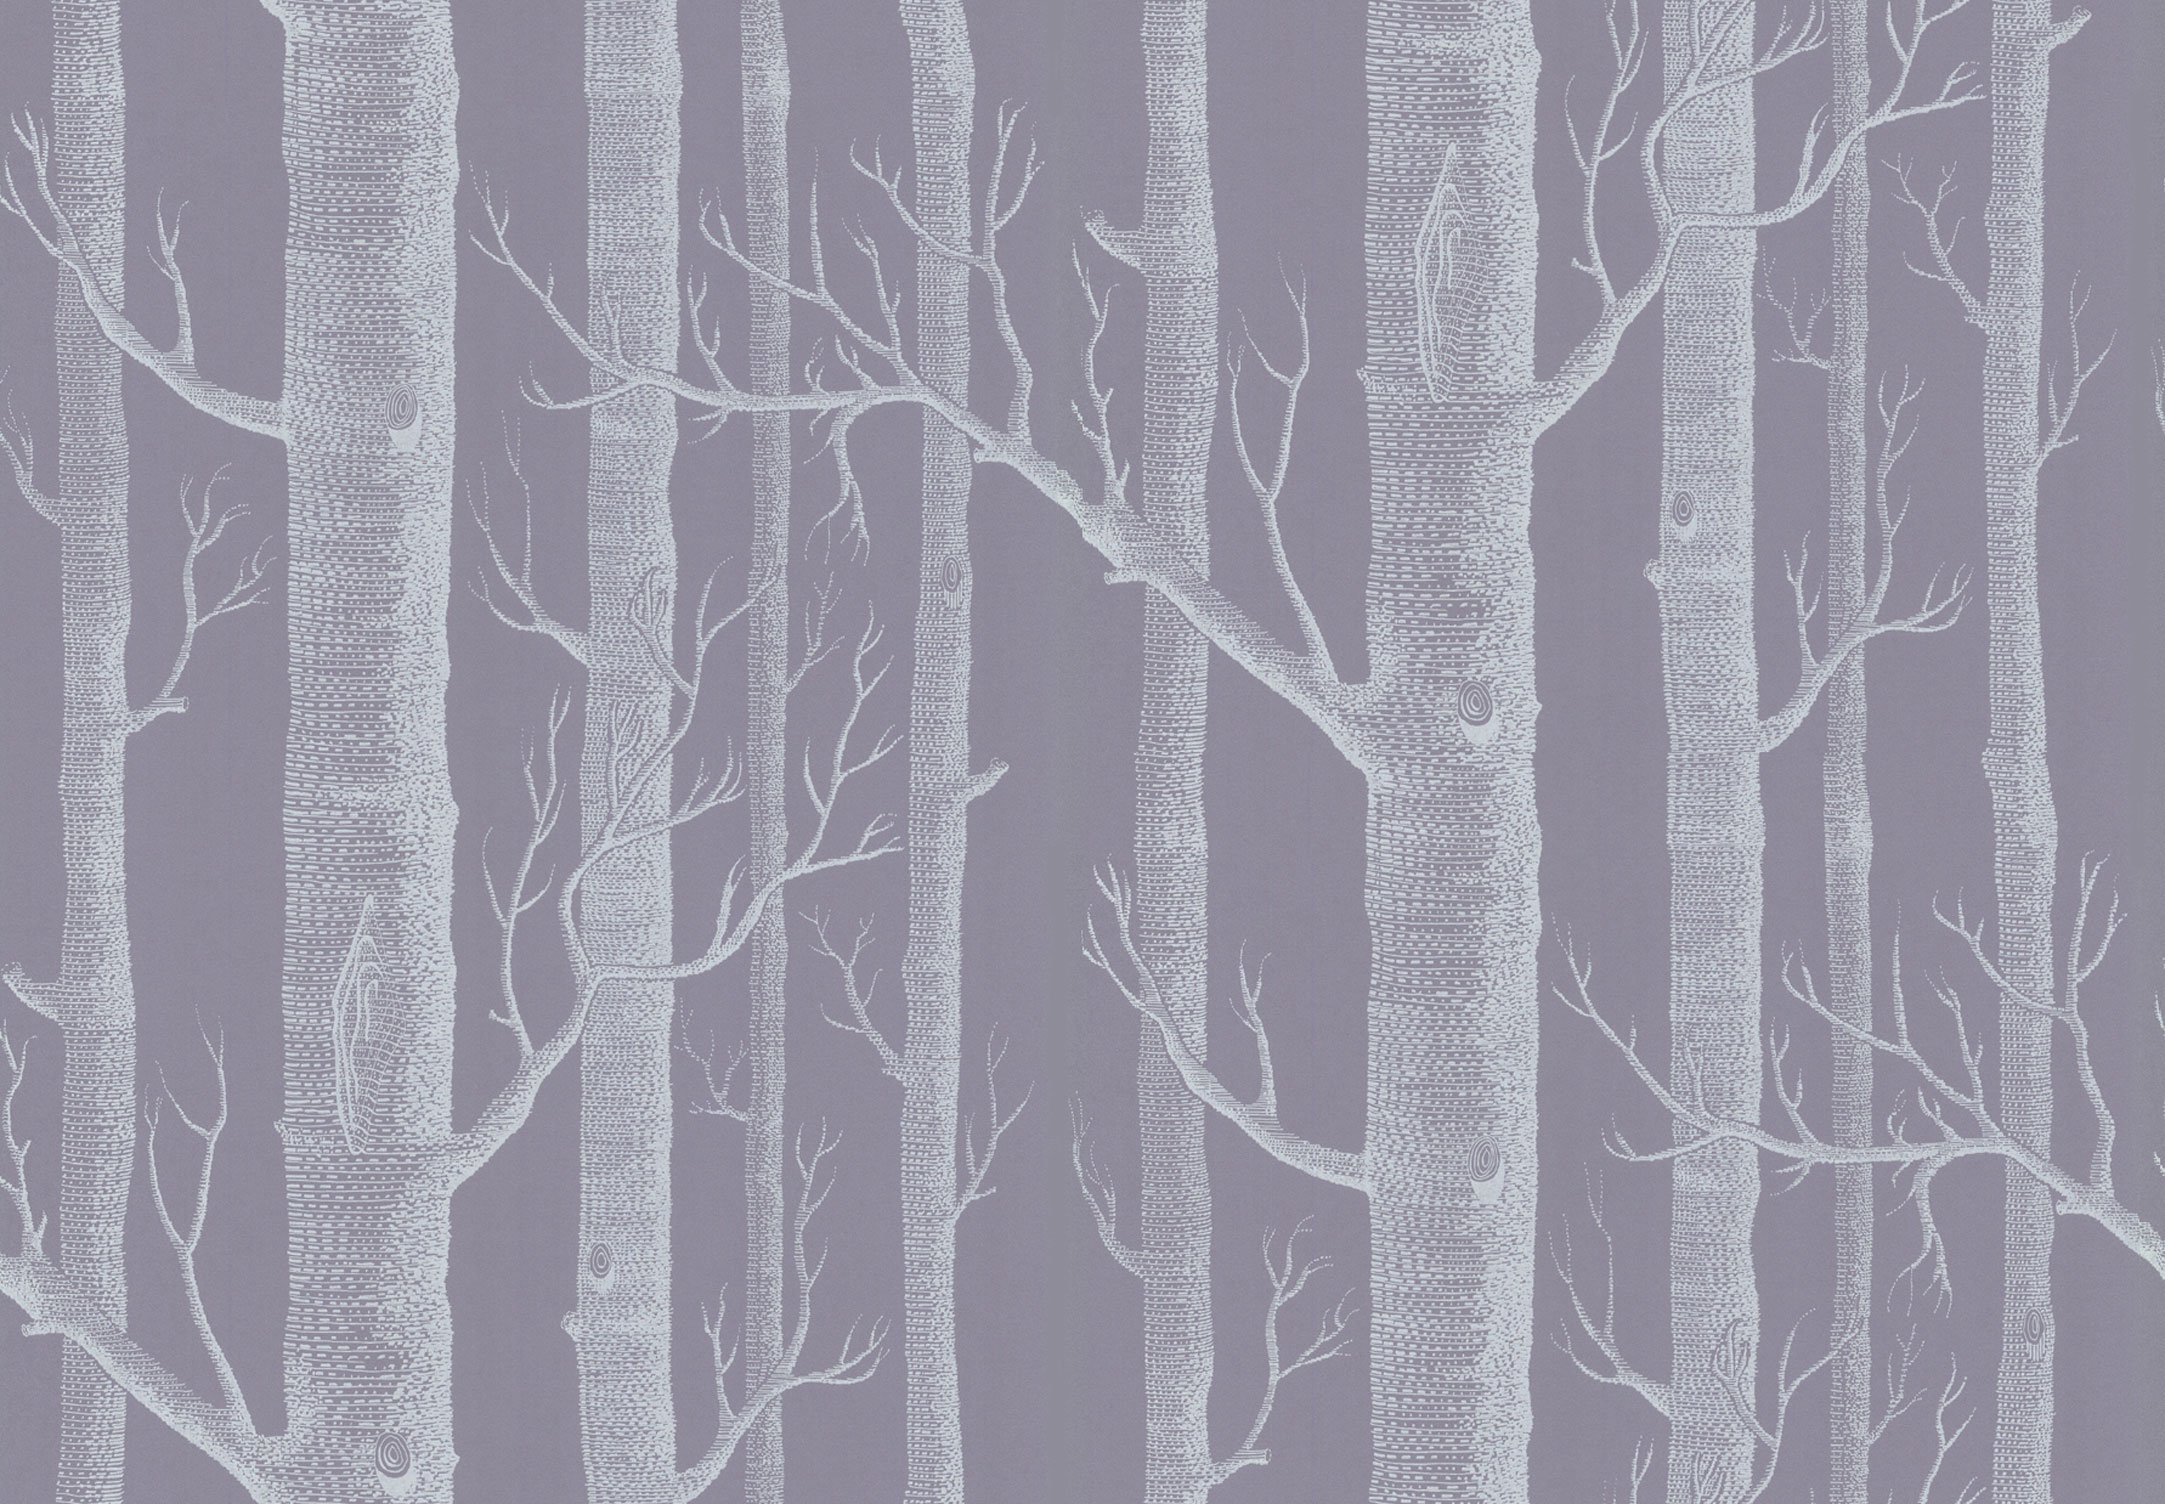 Woods 6912151   New Contemporary Two   Cole Son 2165x1504